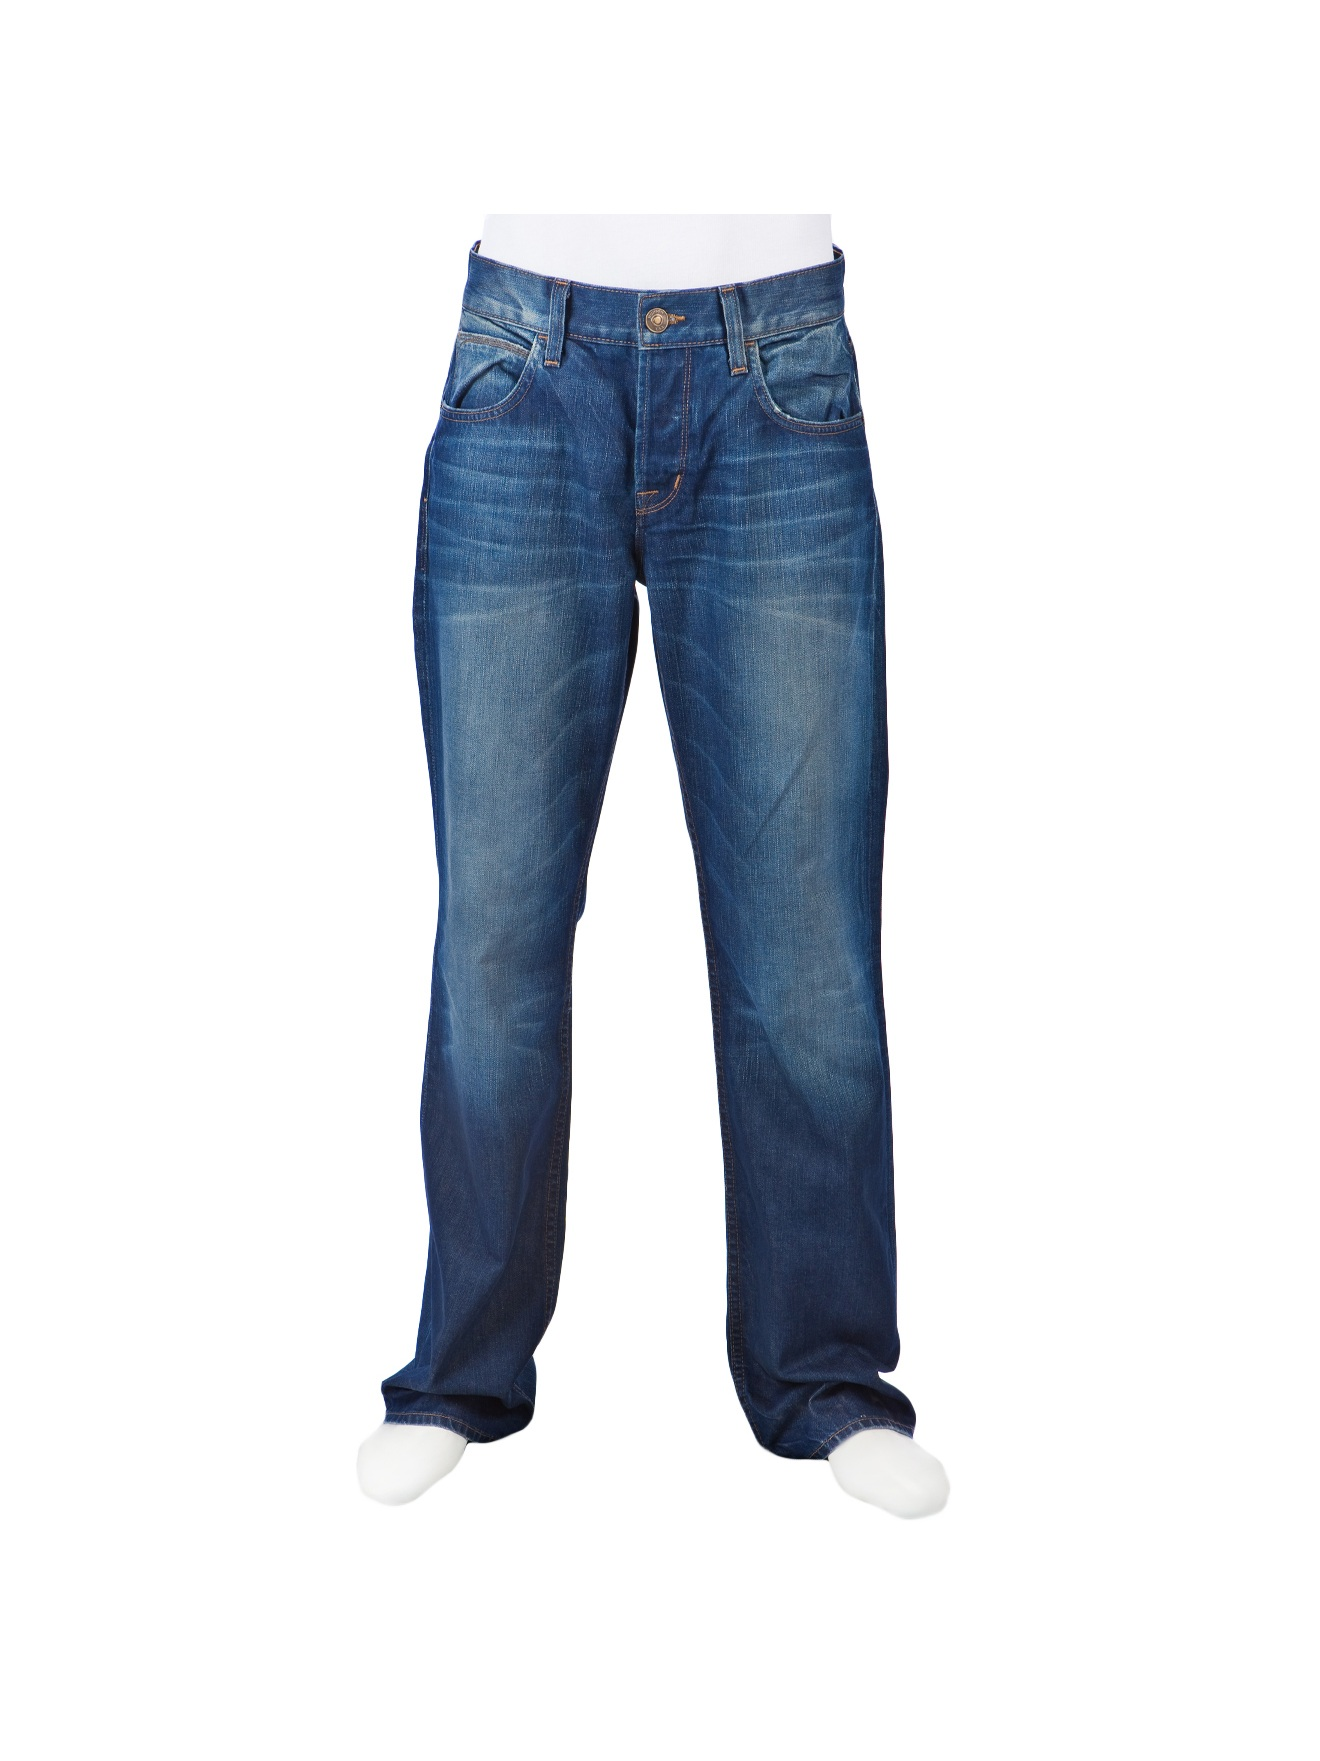 Brown bootcut jeans for women – Global fashion jeans models